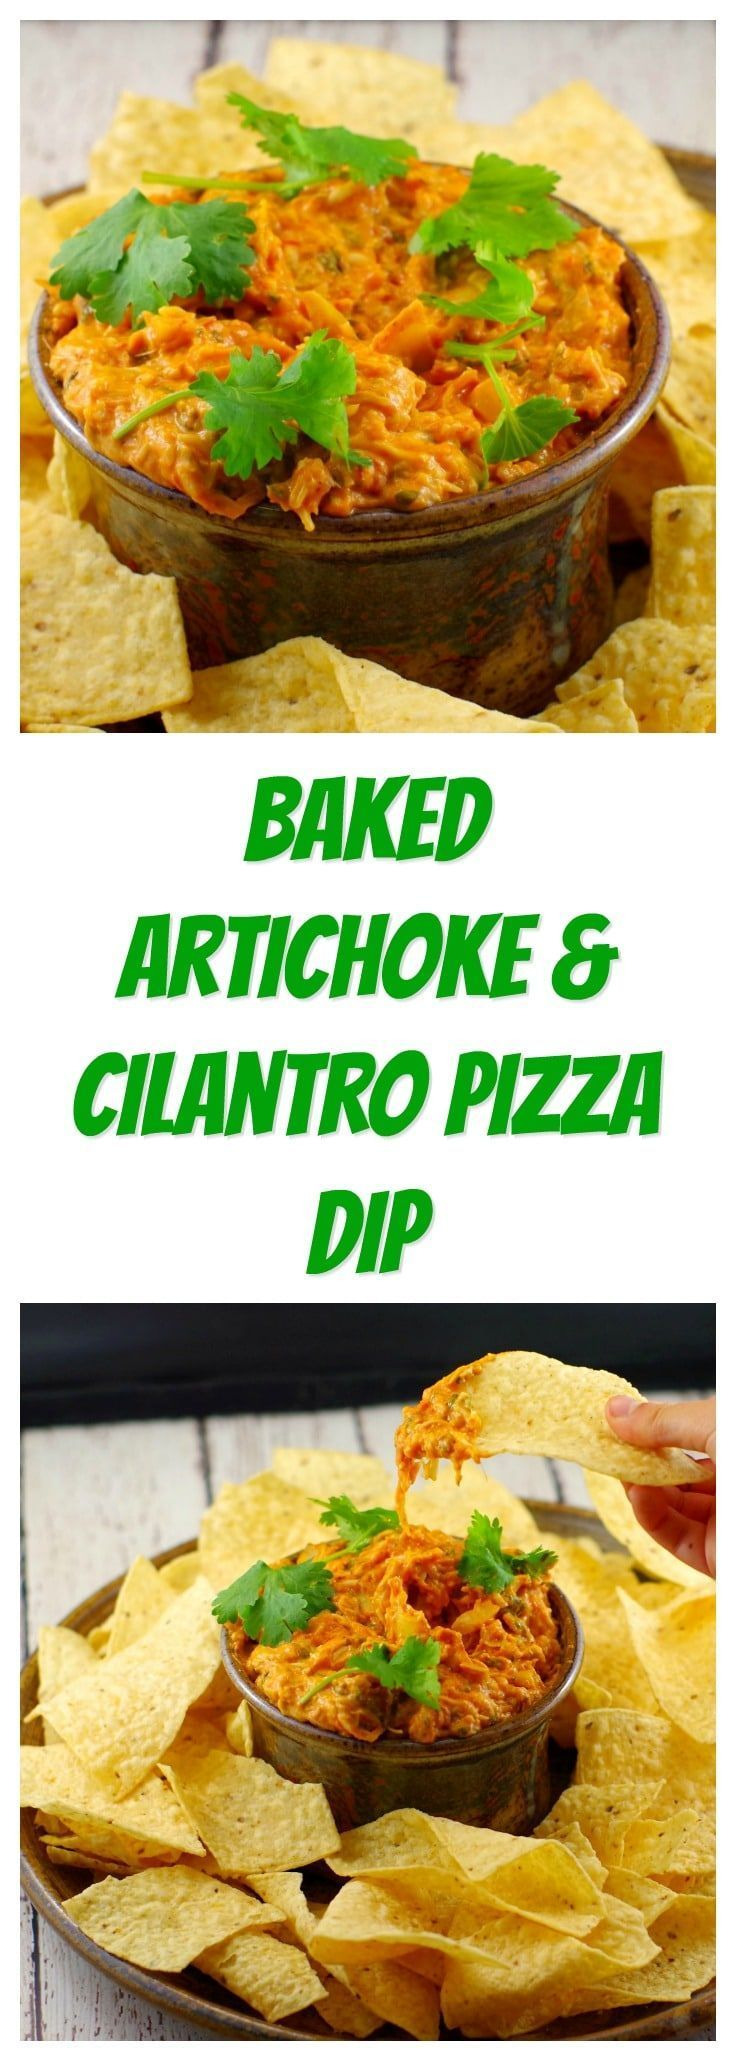 Baked Artichoke & Cilantro Pizza Dip | game day food - Foodmeanderings.comAdd a little sophistication to game day or any day with this Baked Artichoke and Cilantro Pizza Dipping sauce! Serve it with chips, bread, nachos or veggies! #dip #artichoke #artich